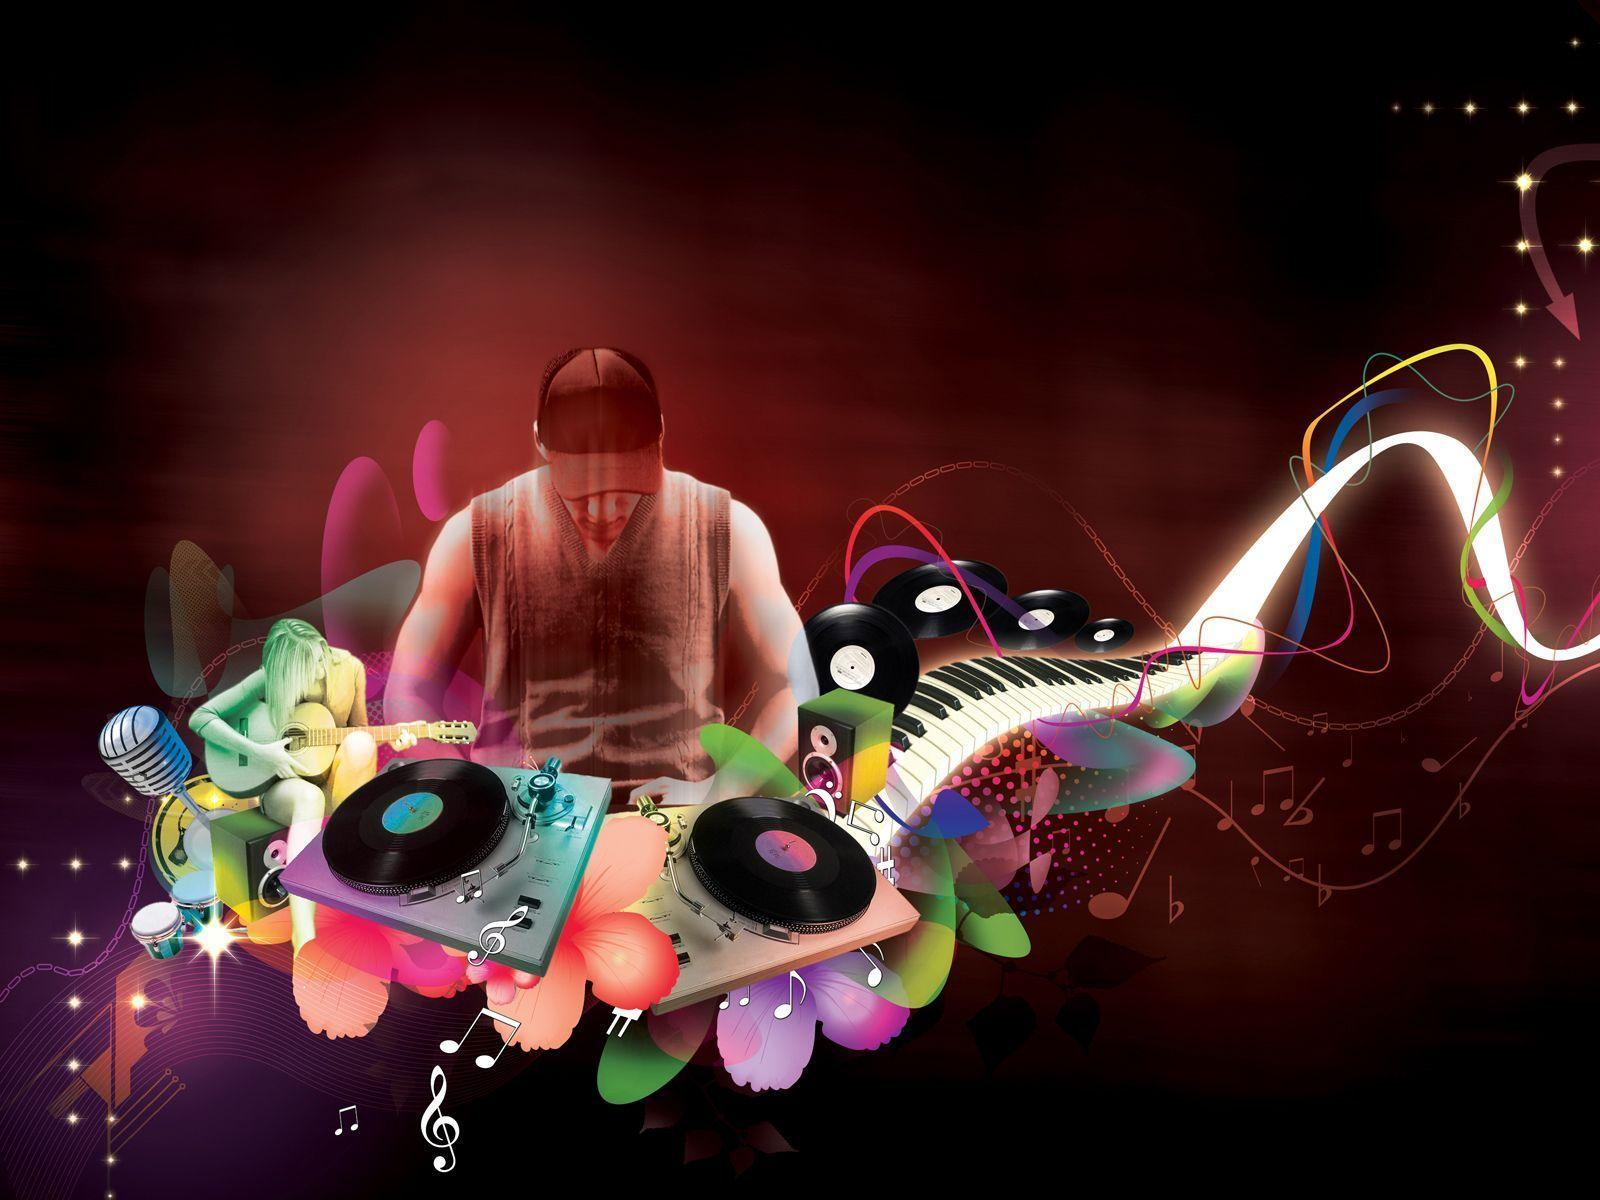 Wallpapers For > Abstract Dj Wallpaper Hd